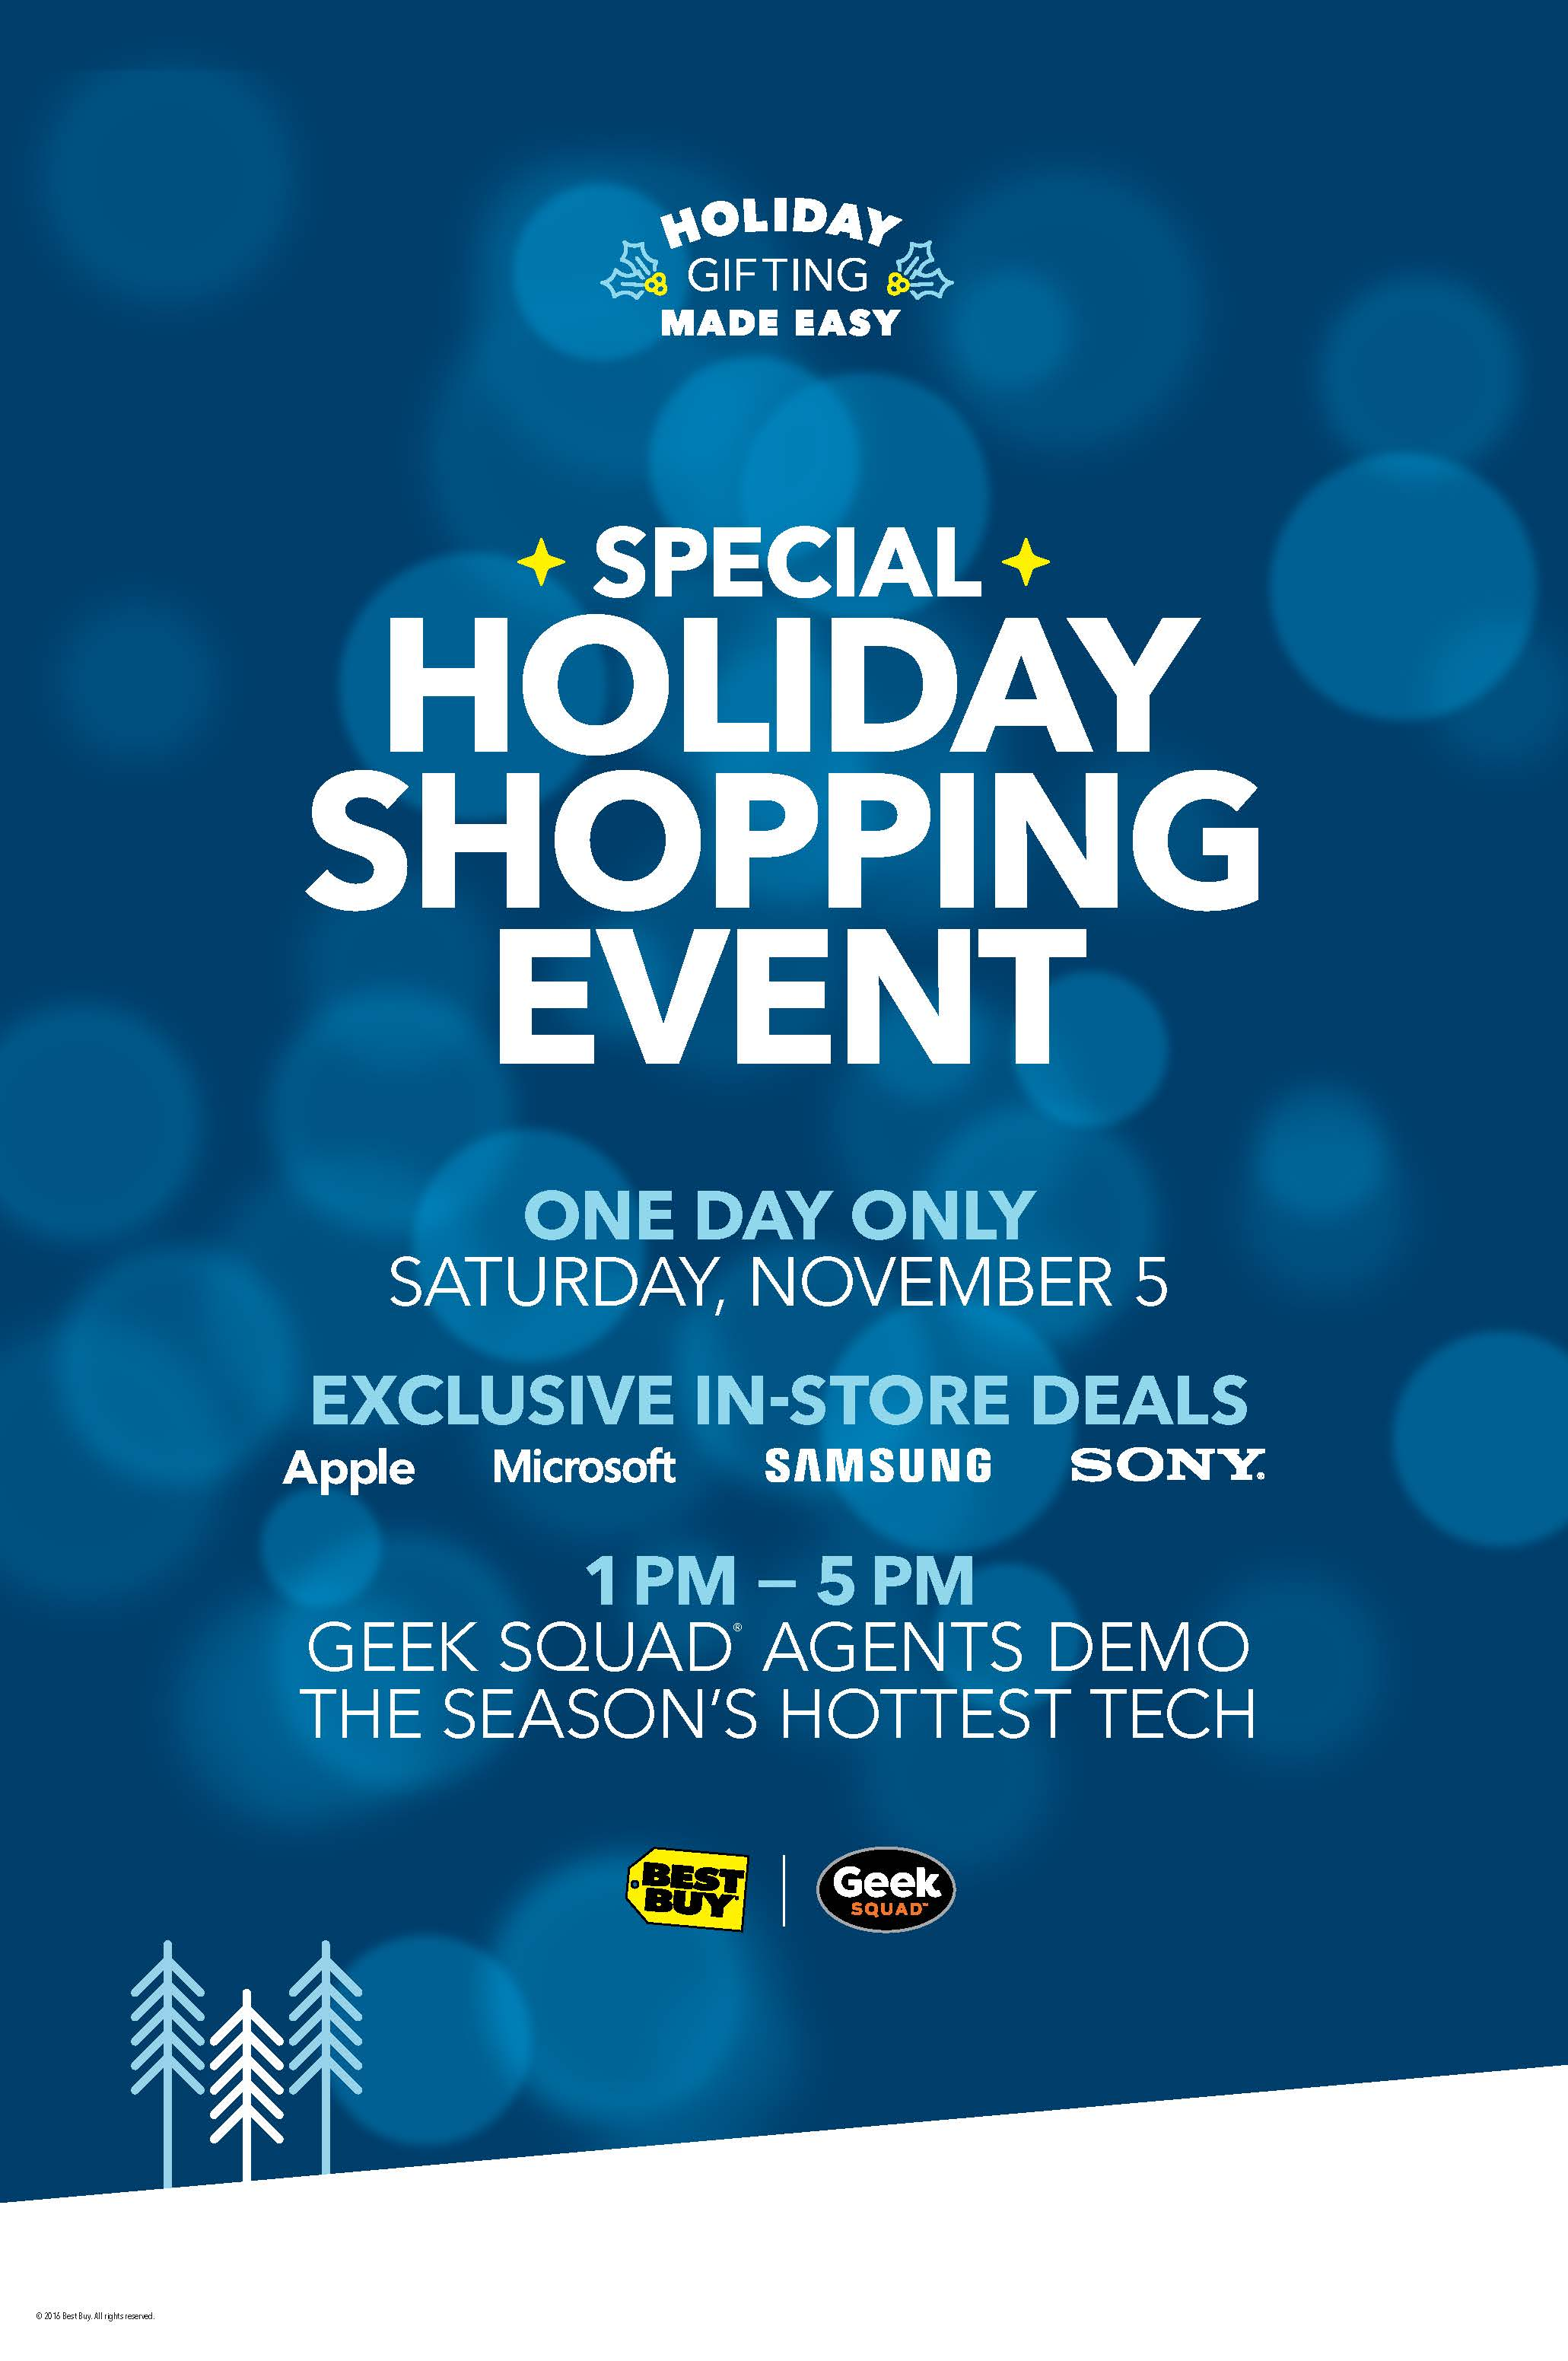 Best Buy Holiday Shopping Event!